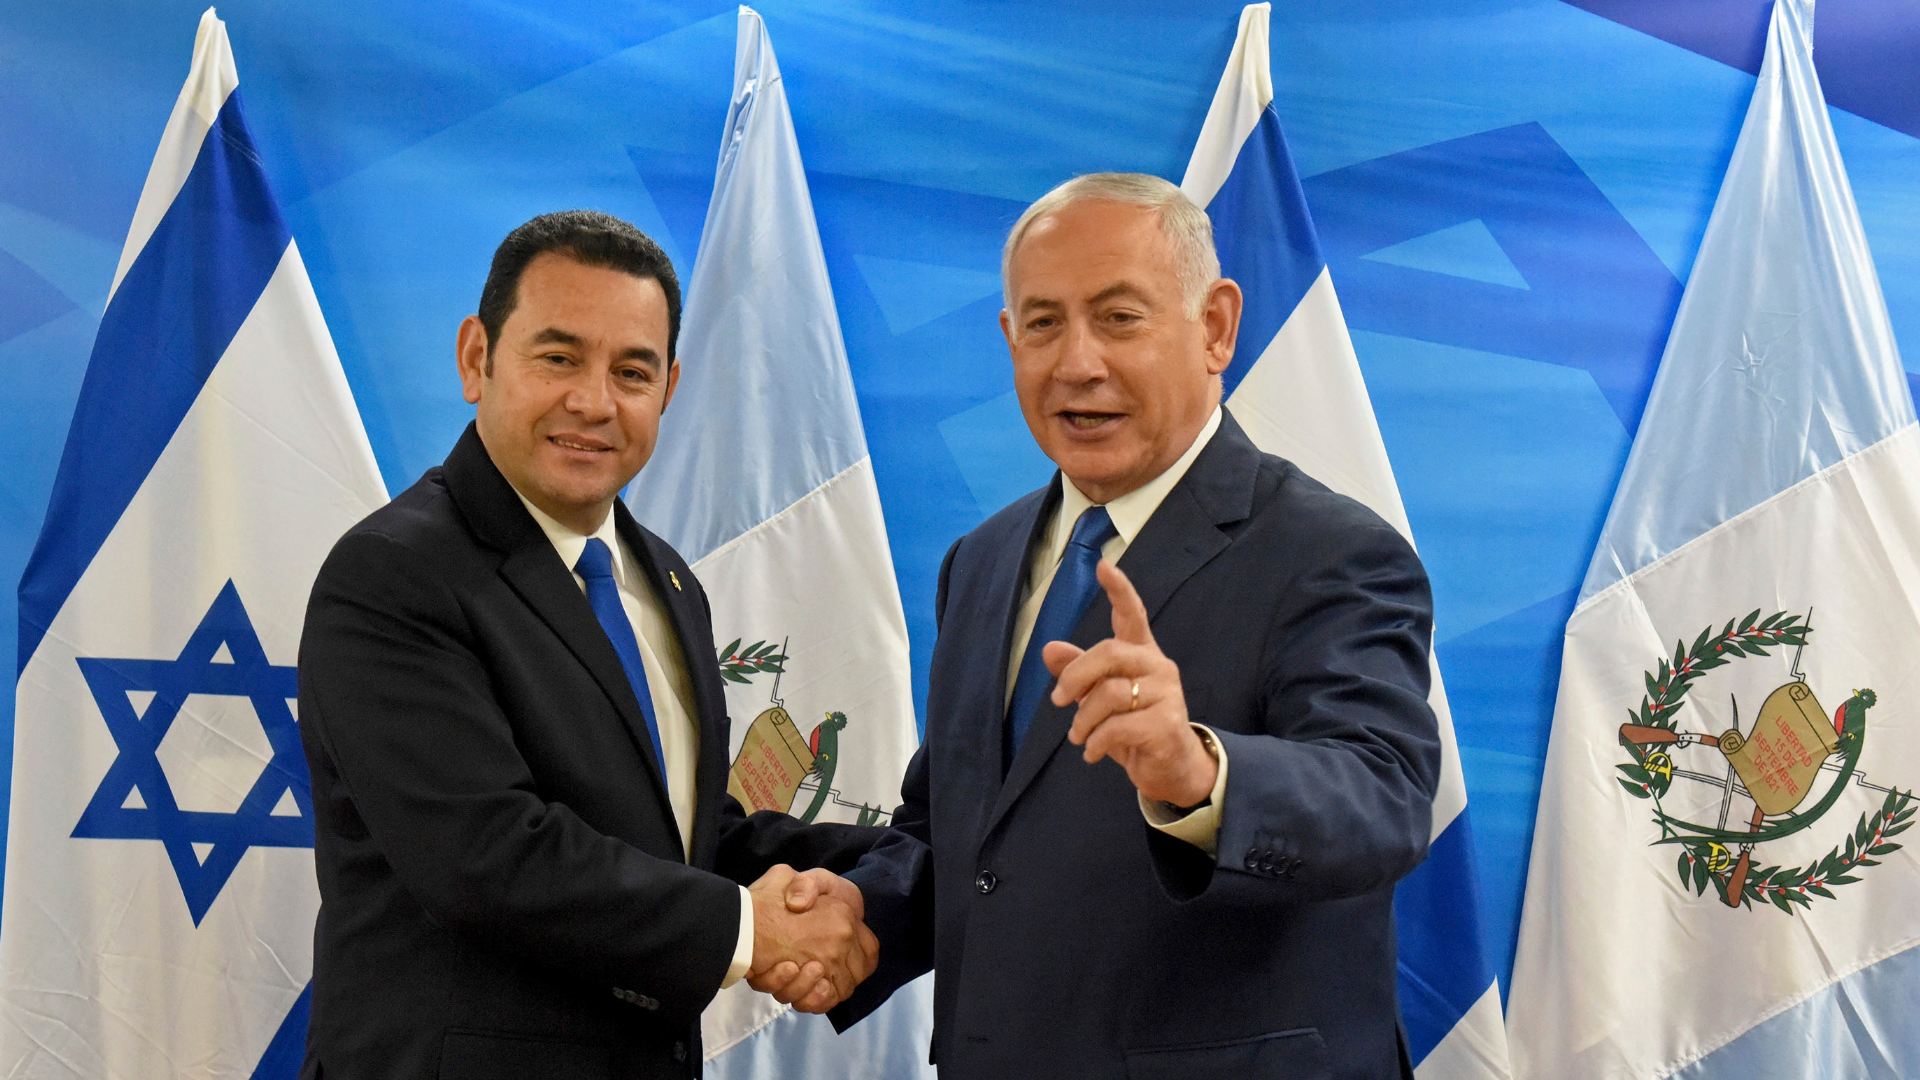 As criticism of Israel mounts, Guatemala opens its embassy in Jerusalem